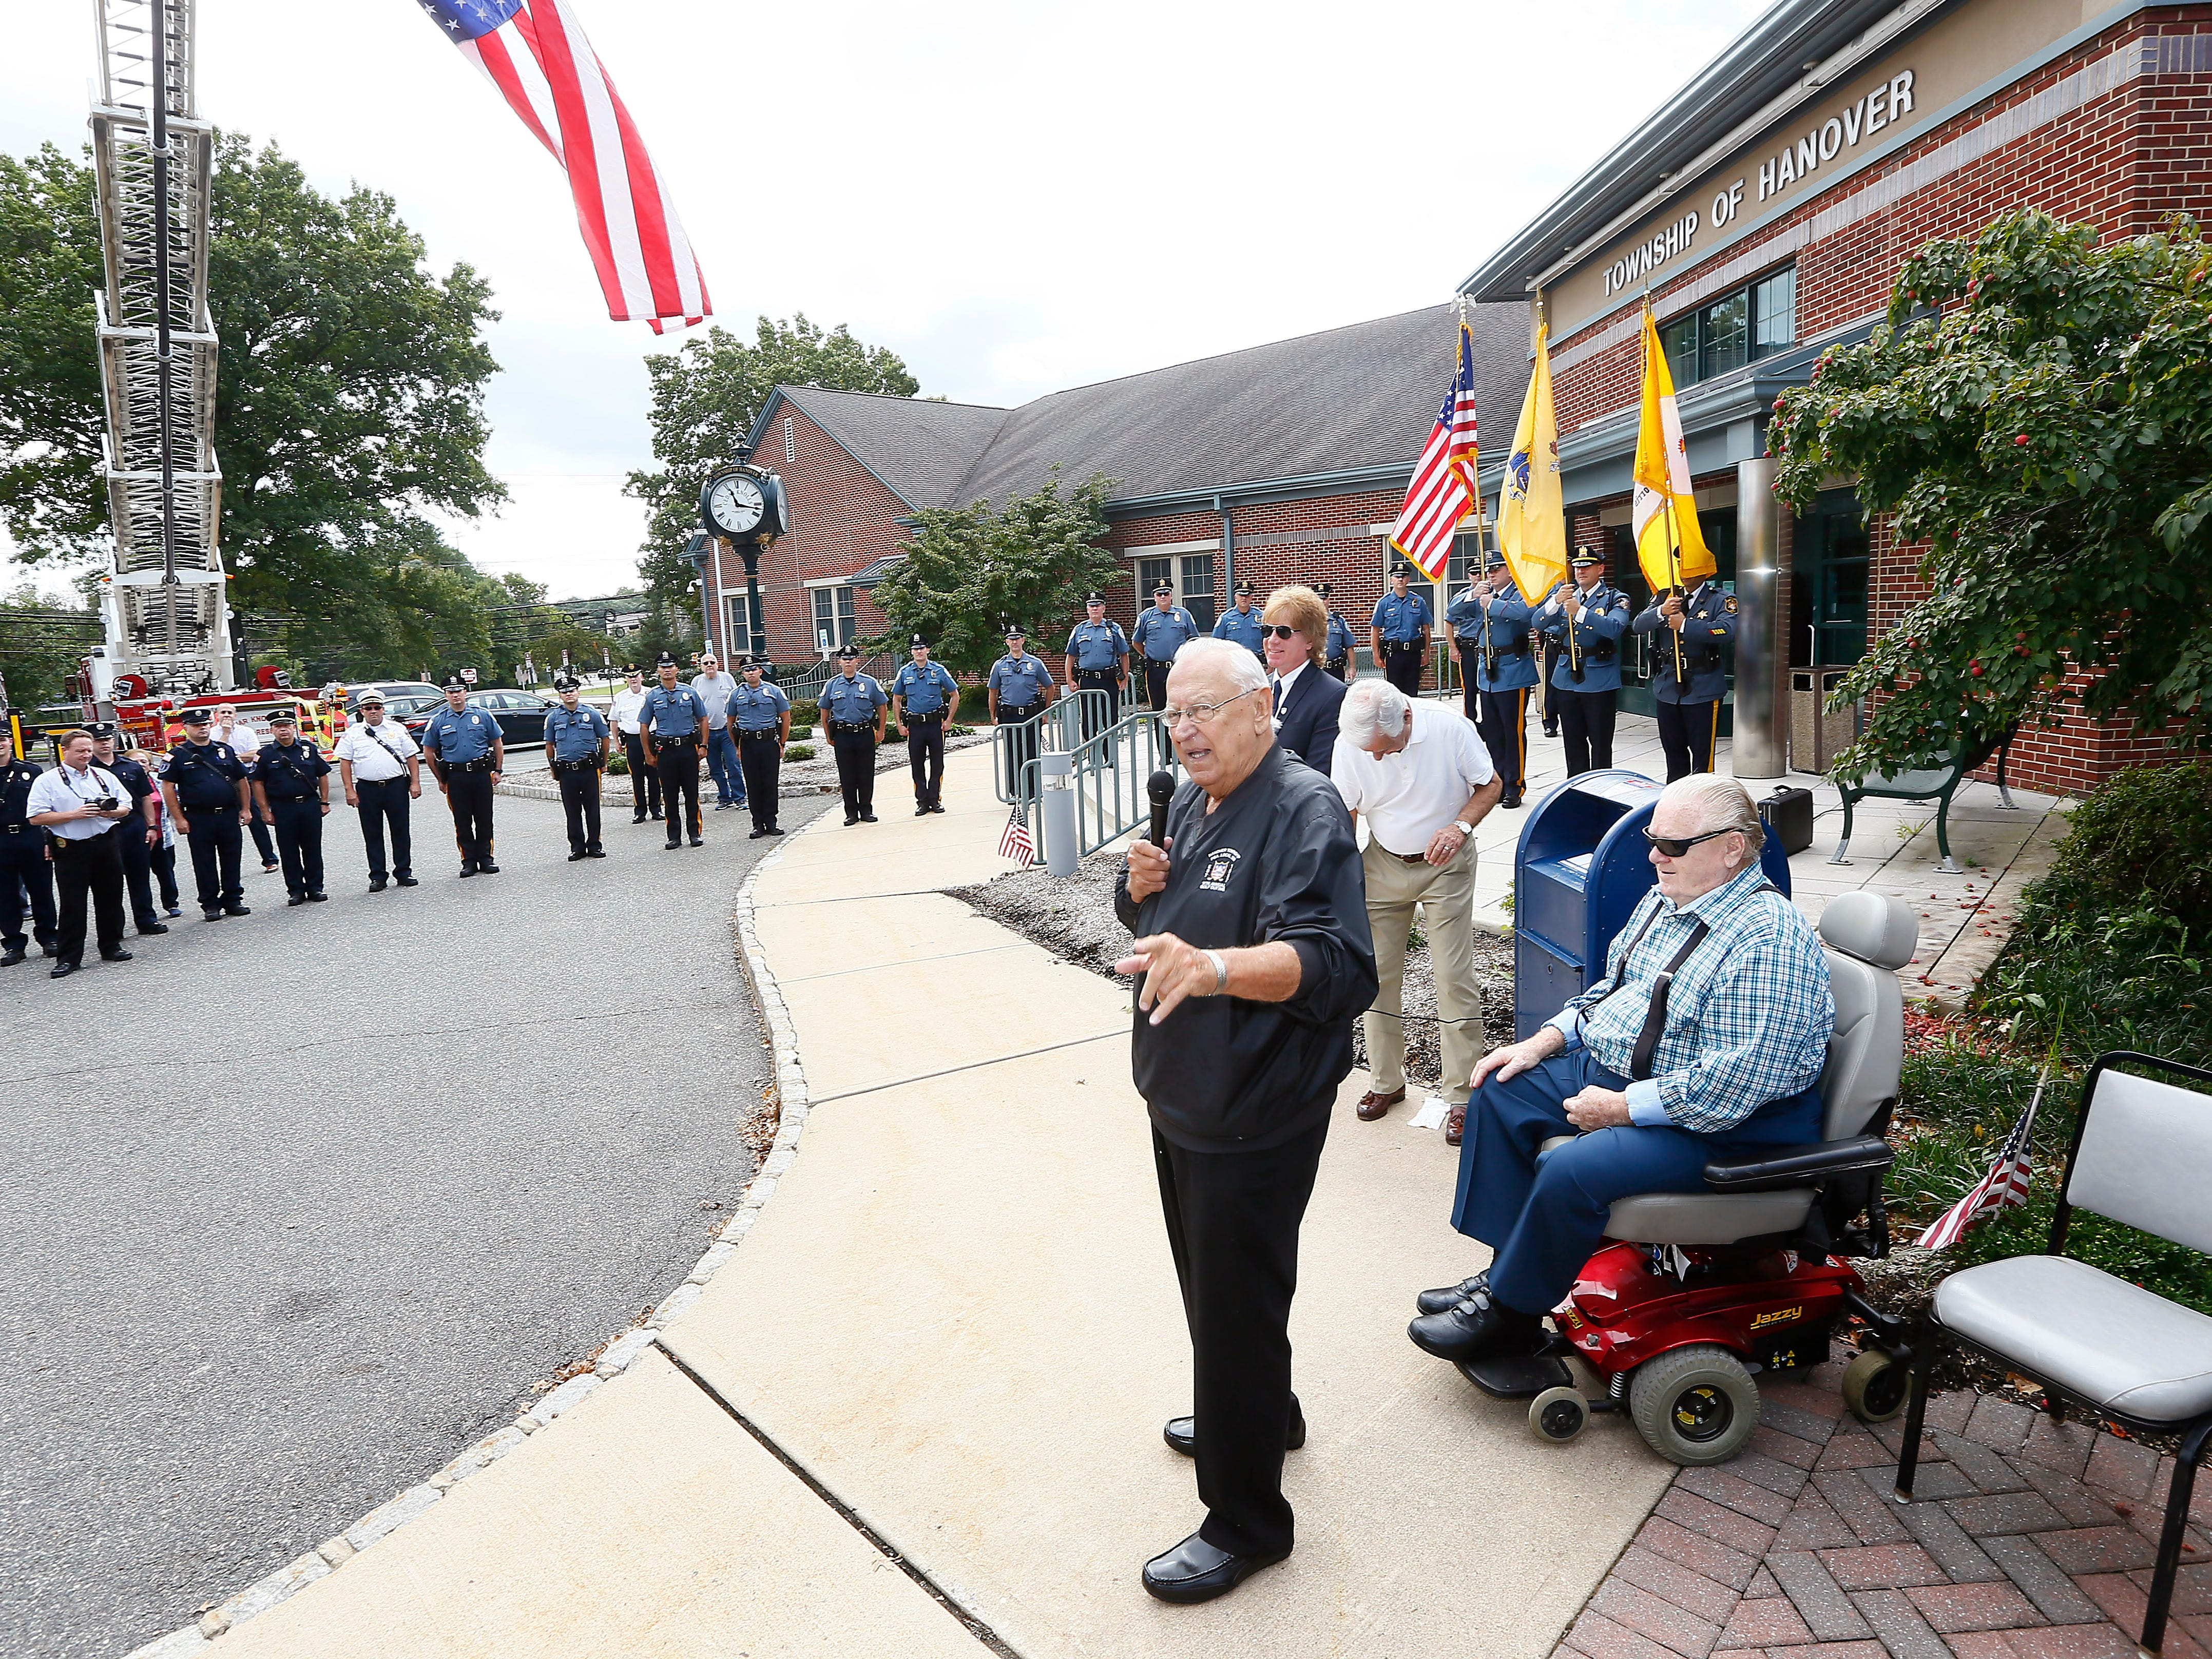 Steve Bolcar speaks to the crowd during the police-style clapout for the retirement of the 60-year officer and crossing guard at the Hanover Municipal Building. October 3, 2018, Hanover, NJ